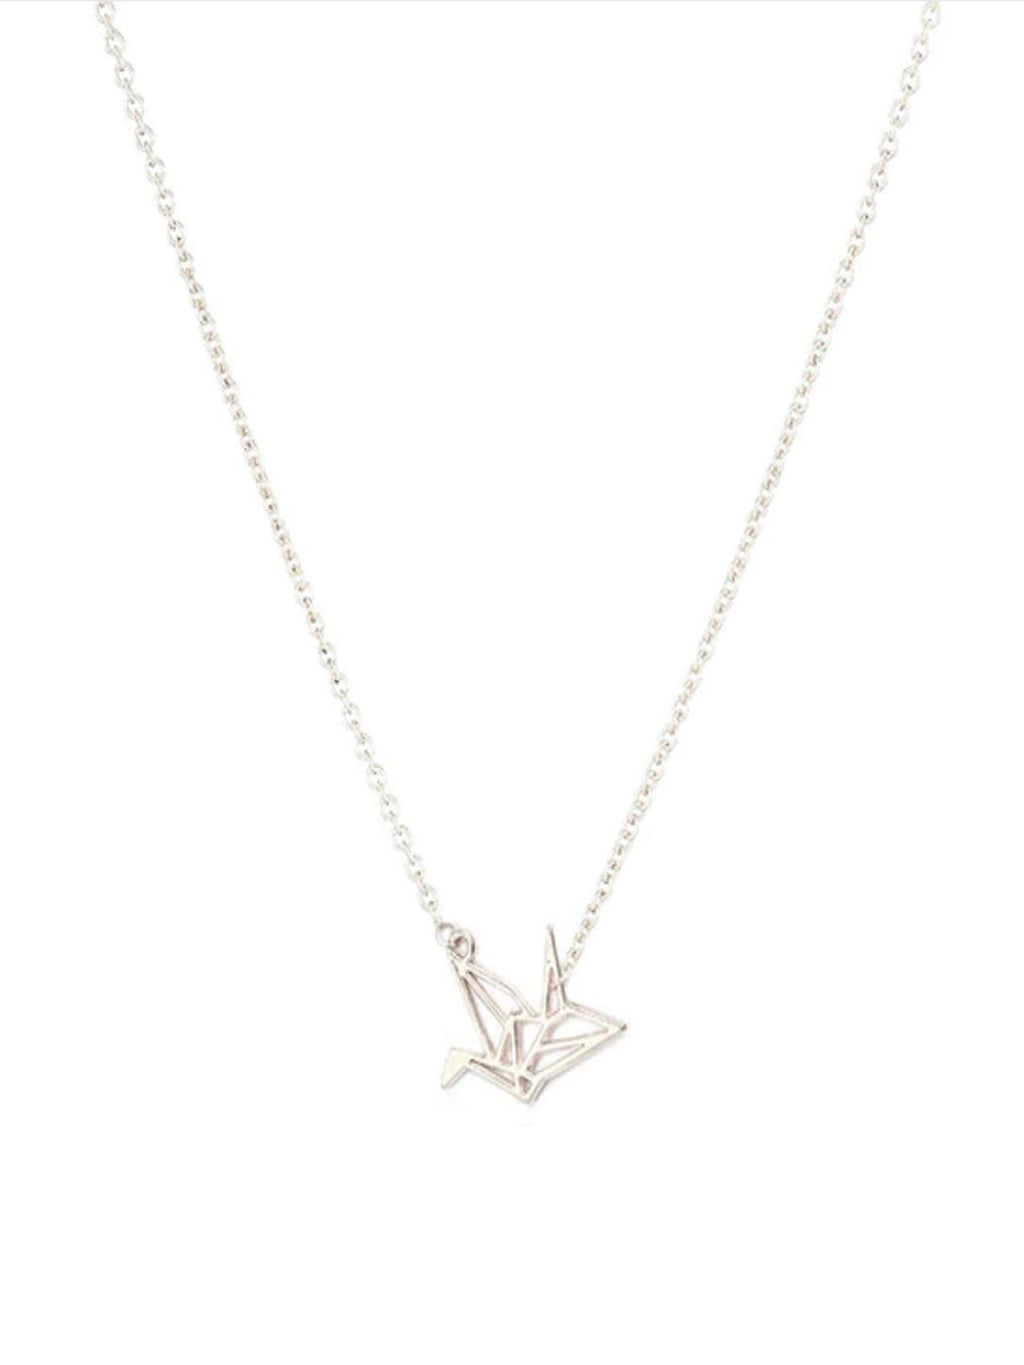 Crane Future Inspirational Silver Tone Necklace